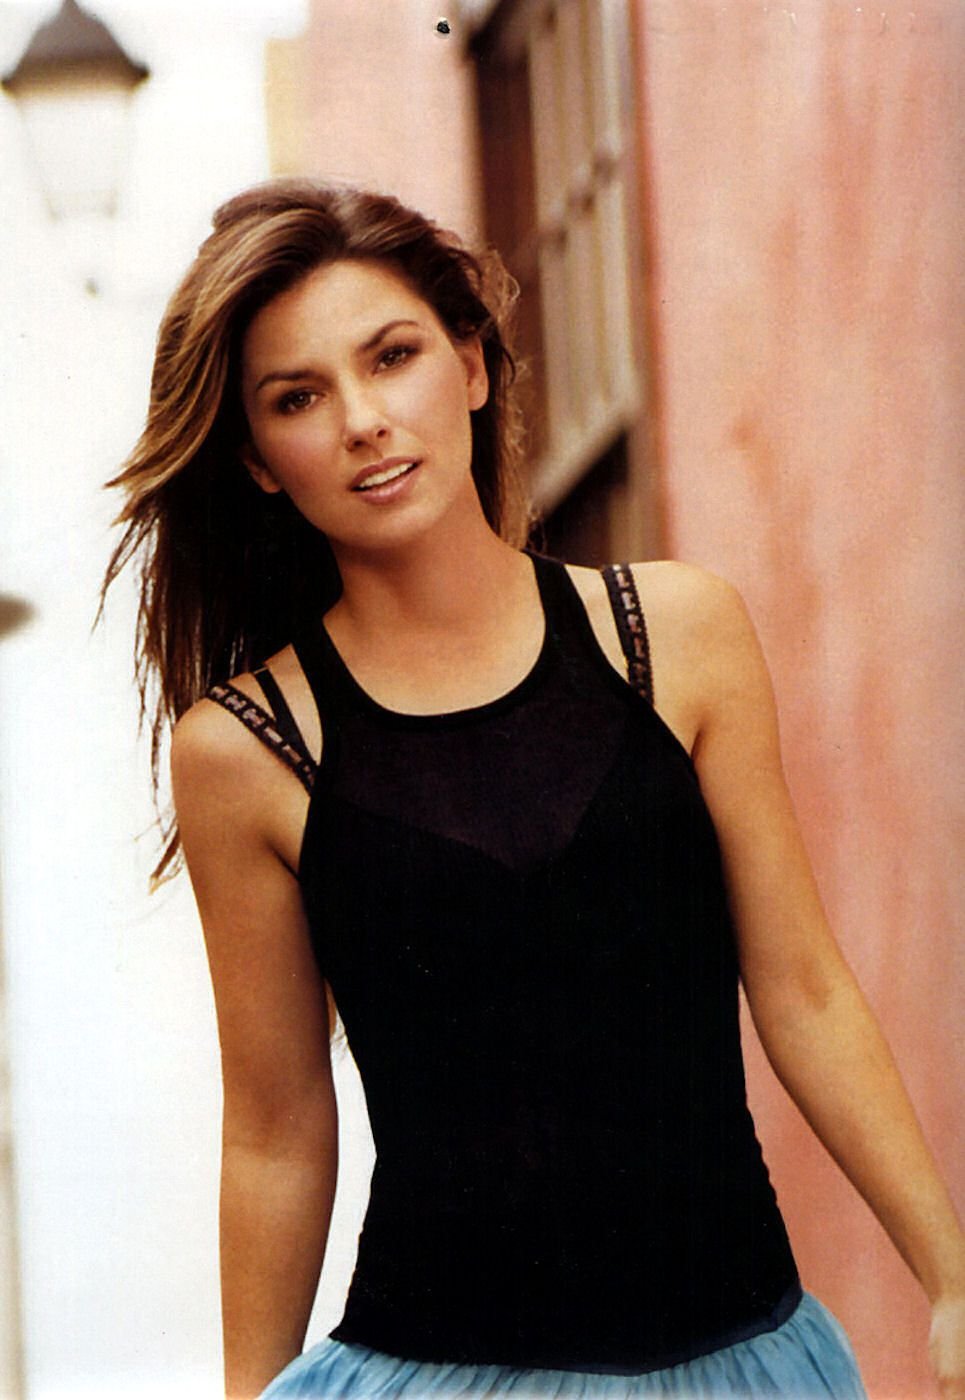 shania twain - ka-chingshania twain - ka-ching, shania twain - ka-ching скачать, shania twain слушать, shania twain 2016, shania twain - from this moment on, shania twain you're still the one, shania twain клипы, shania twain песни, shania twain - ka-ching текст, shania twain - from this moment on перевод, shania twain фото, shania twain wiki, shania twain forever and for always, shania twain википедия, shania twain 2017, shania twain up, shania twain come on over, shania twain from this moment lyrics, shania twain instagram, shania twain lyrics